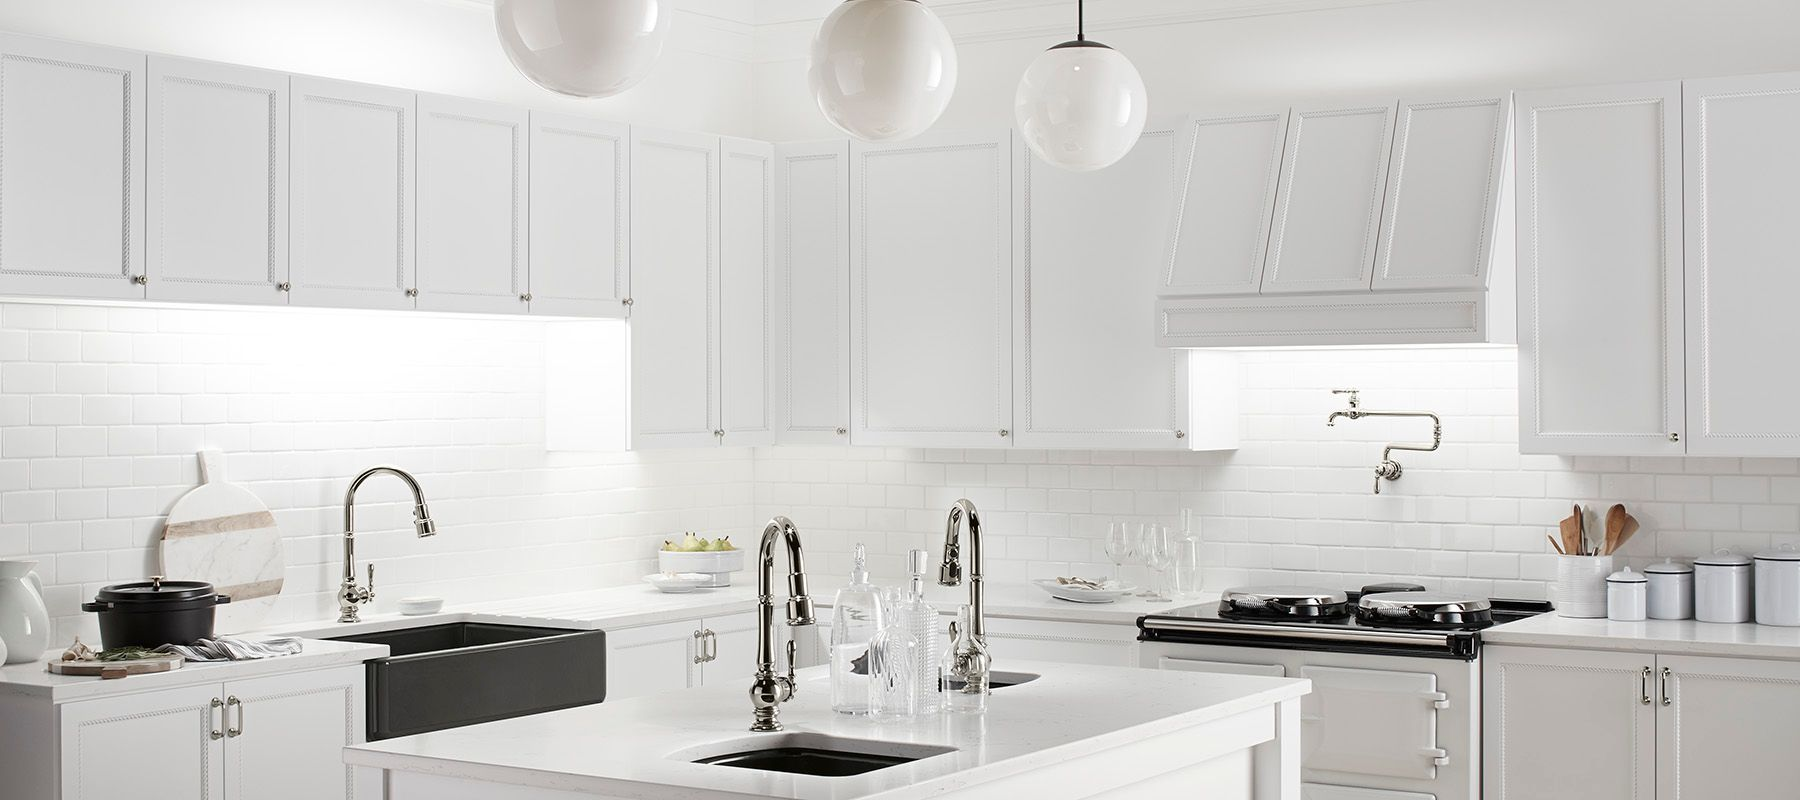 White Kitchen Faucet kitchen sink faucets | kitchen faucets | kitchen | kohler